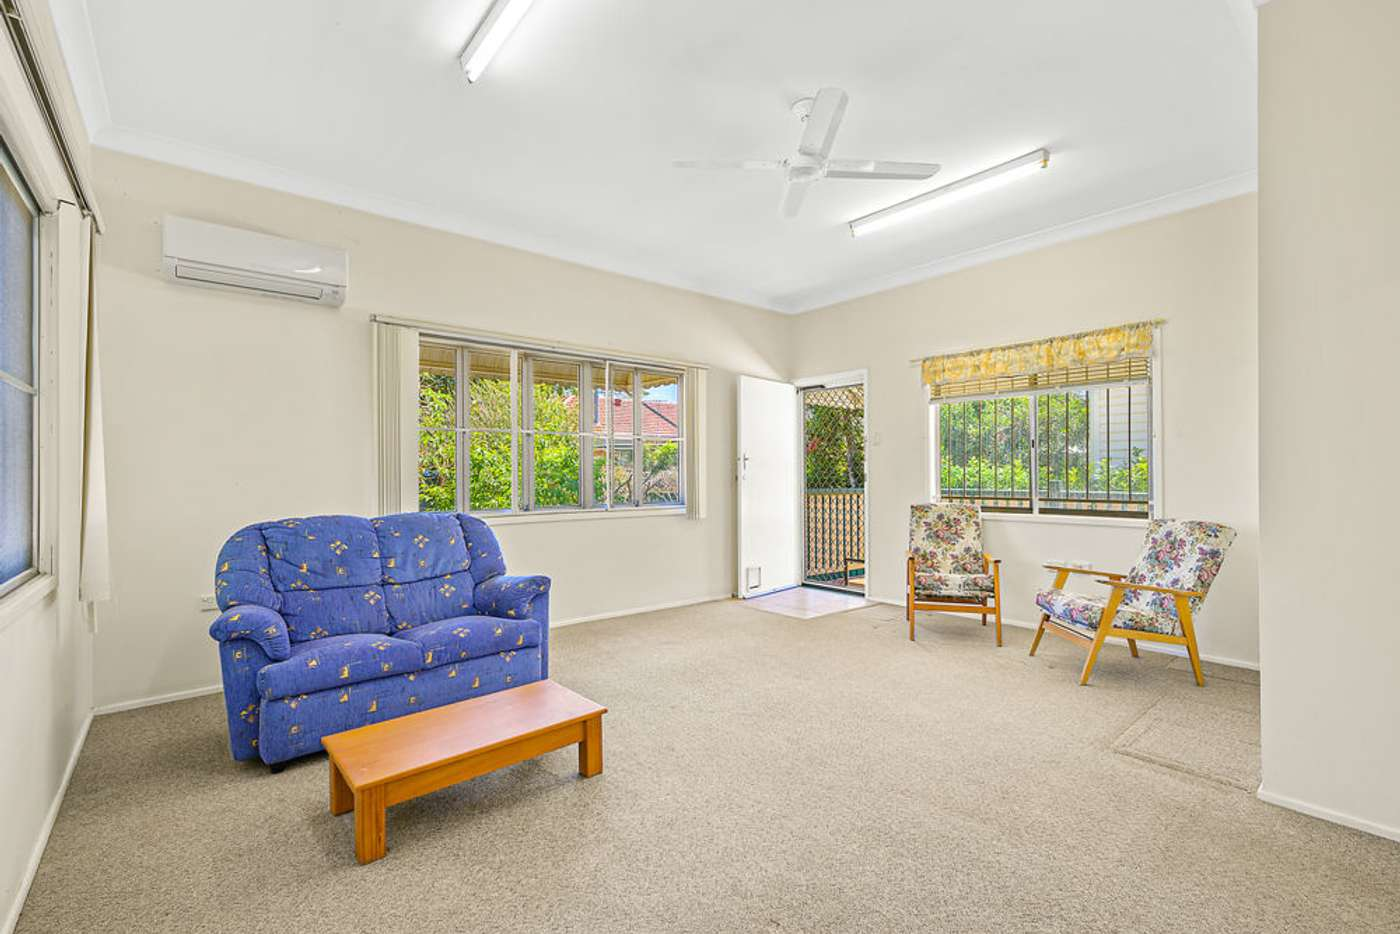 Fifth view of Homely house listing, 12 Gibson Crescent, Holland Park QLD 4121